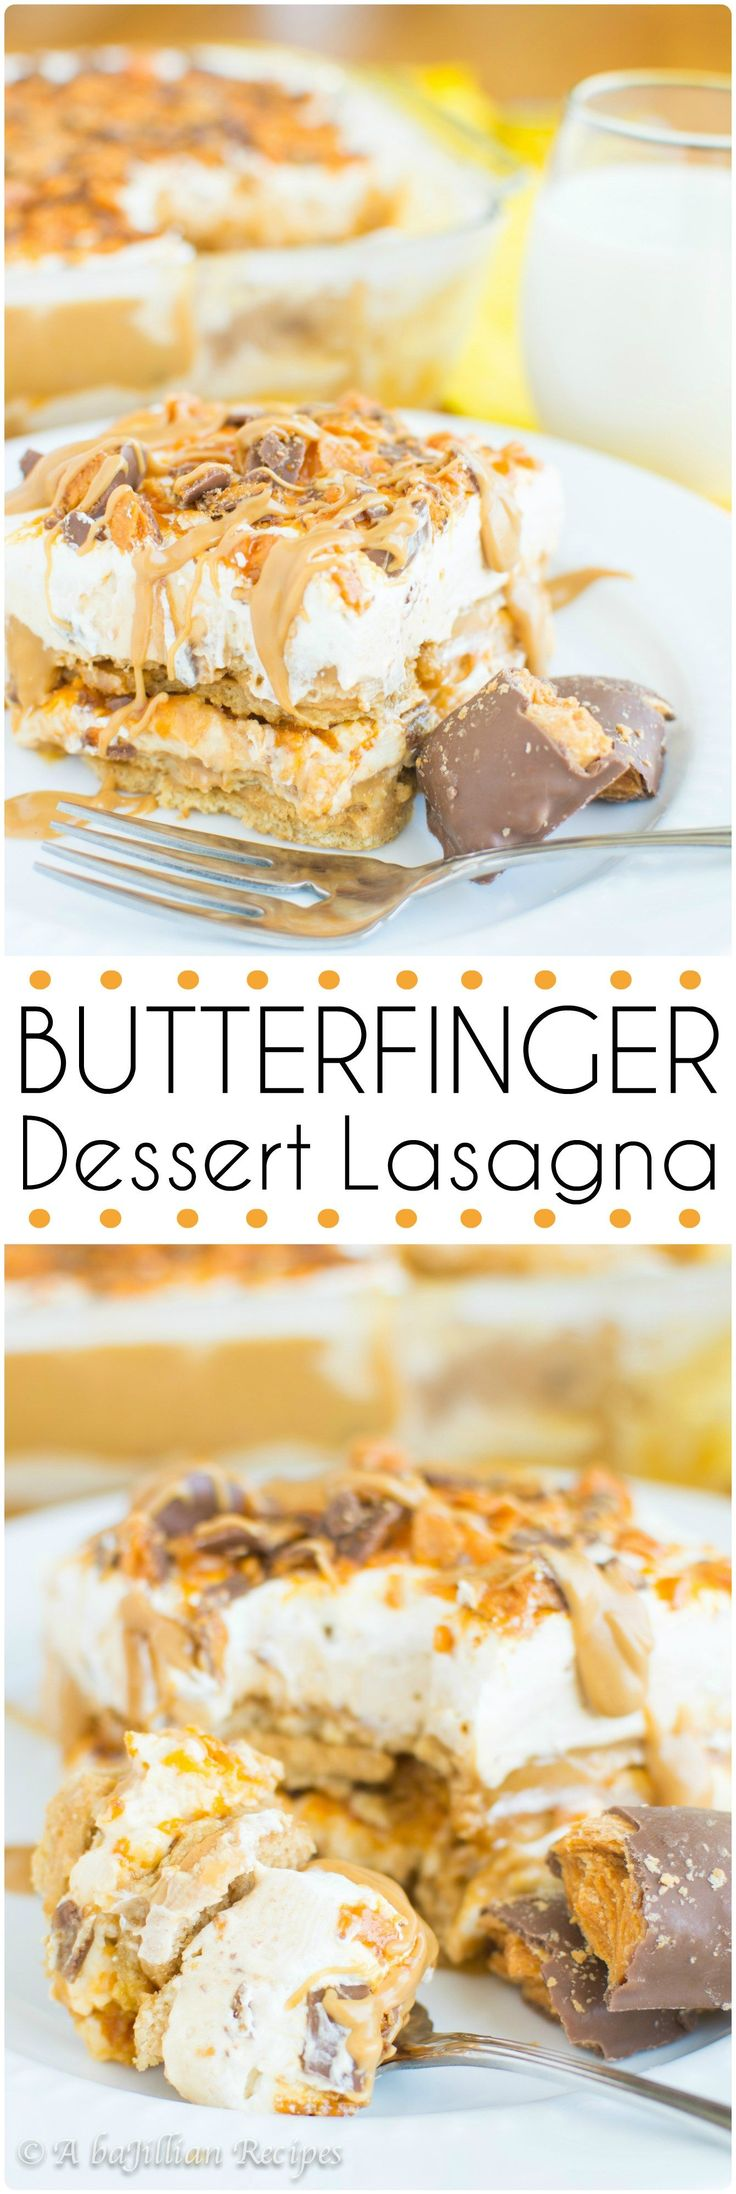 This Butterfinger Dessert Lasagna is a simple, no-bake indulgence with layers of…